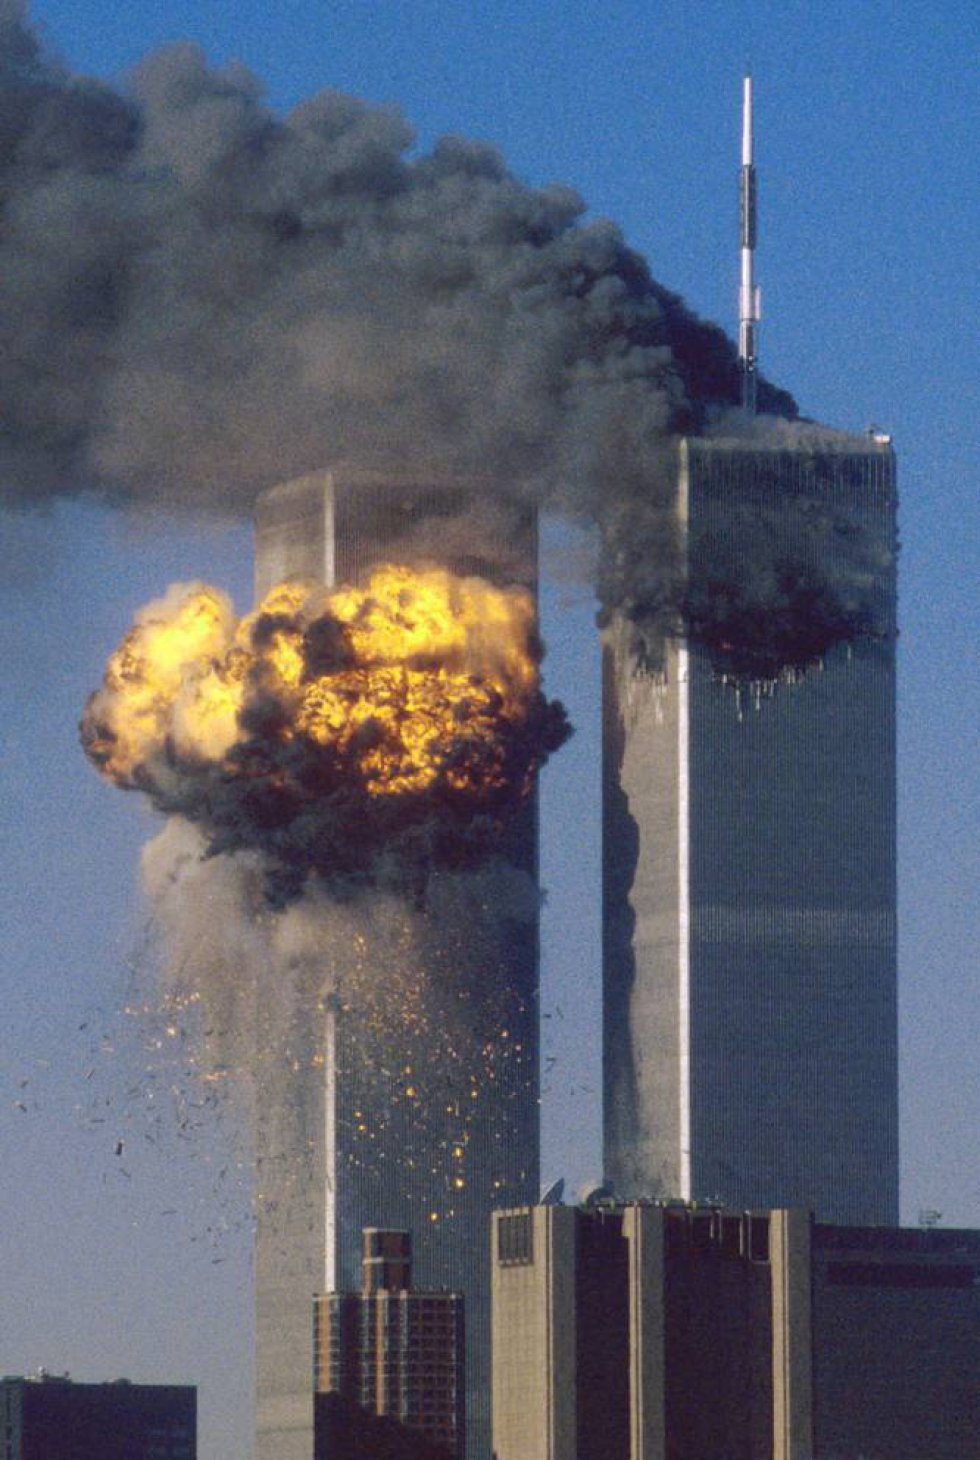 La Torre Sur del World Trade Center estalla en llamas tras el impacto del vuelo 175 de United Airlines.